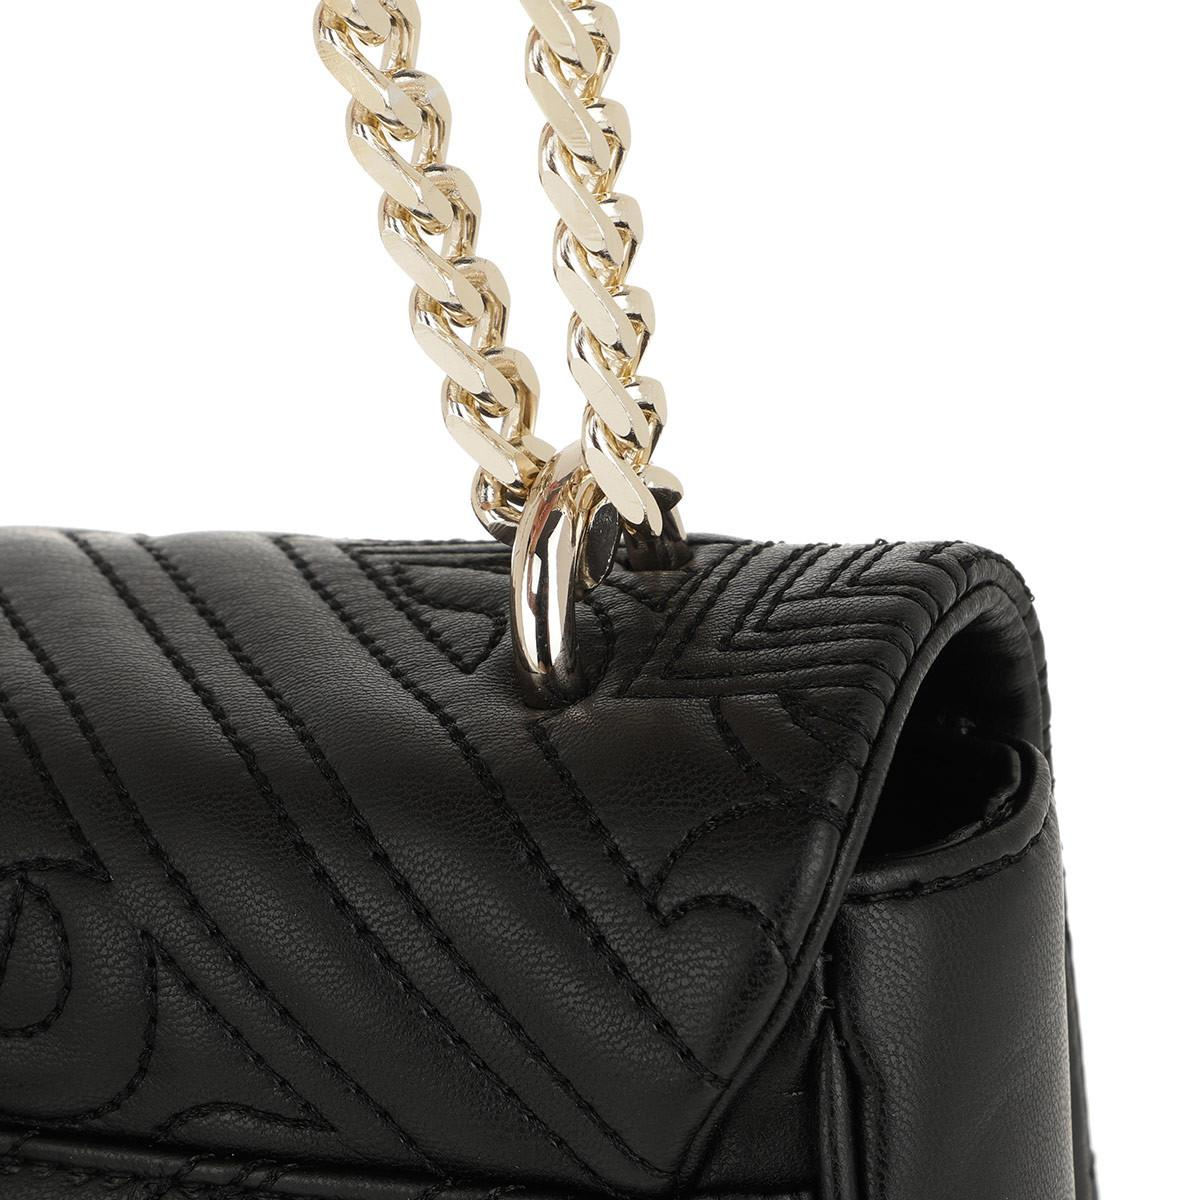 49622b553b36 Versace Jeans Embroidered Chain Crossbody Bag Black in Black - Lyst